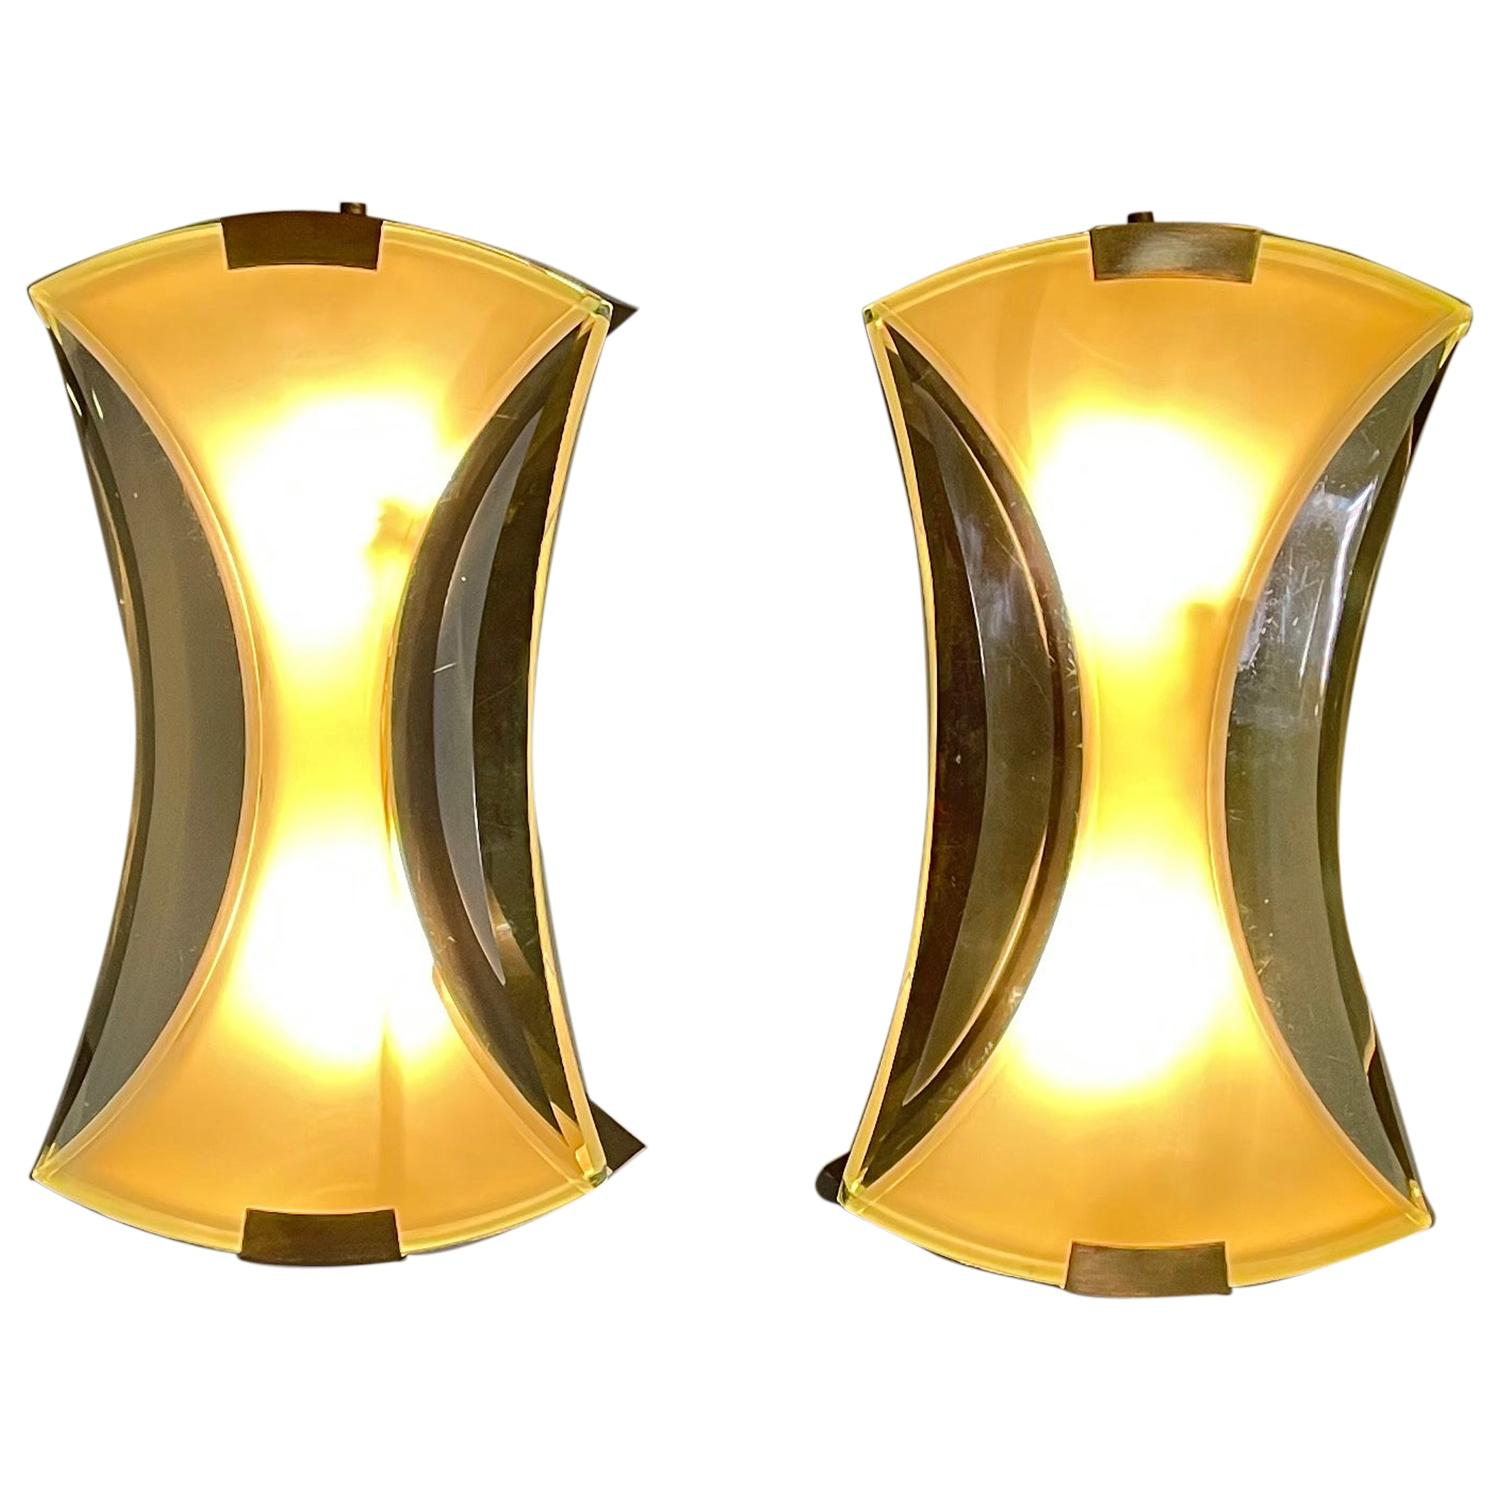 Max Ingrand for Fontana Arte Pair of Sconces Model 2225